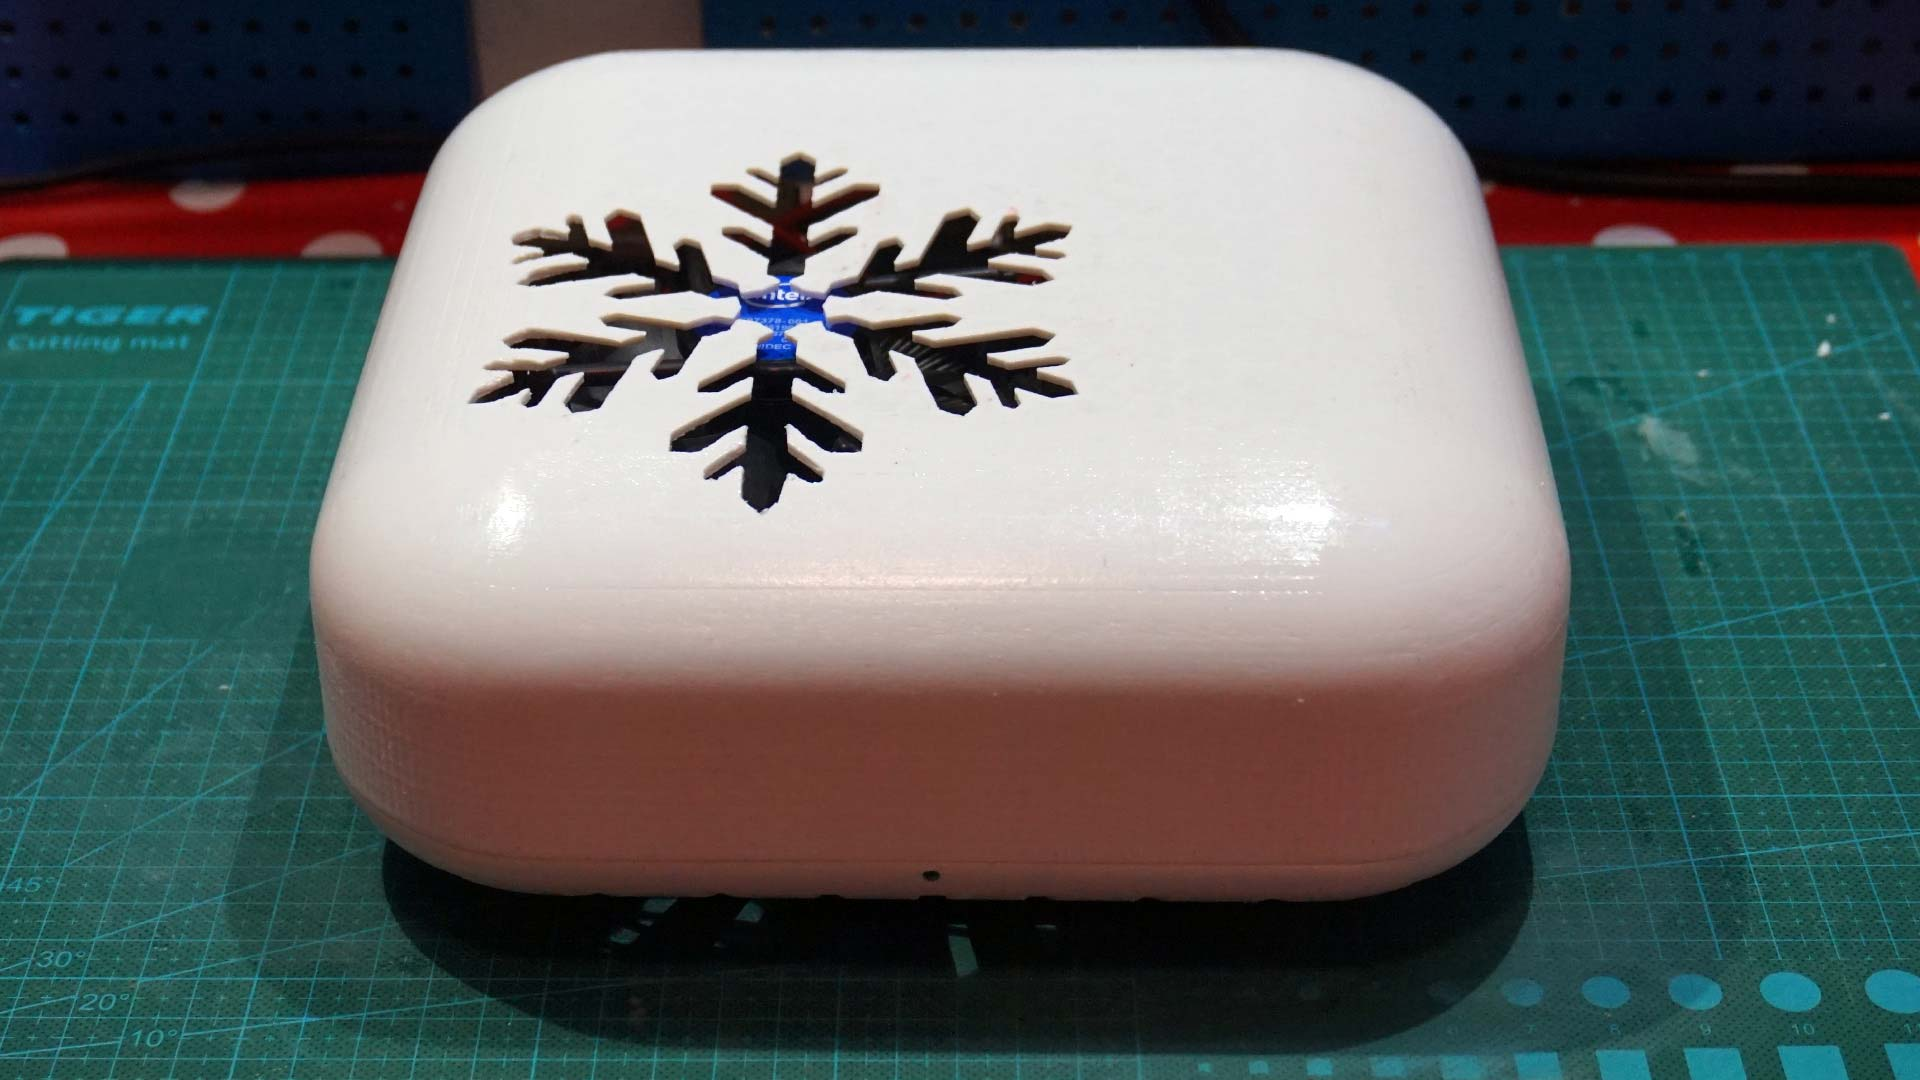 Frosty - fully assembled case